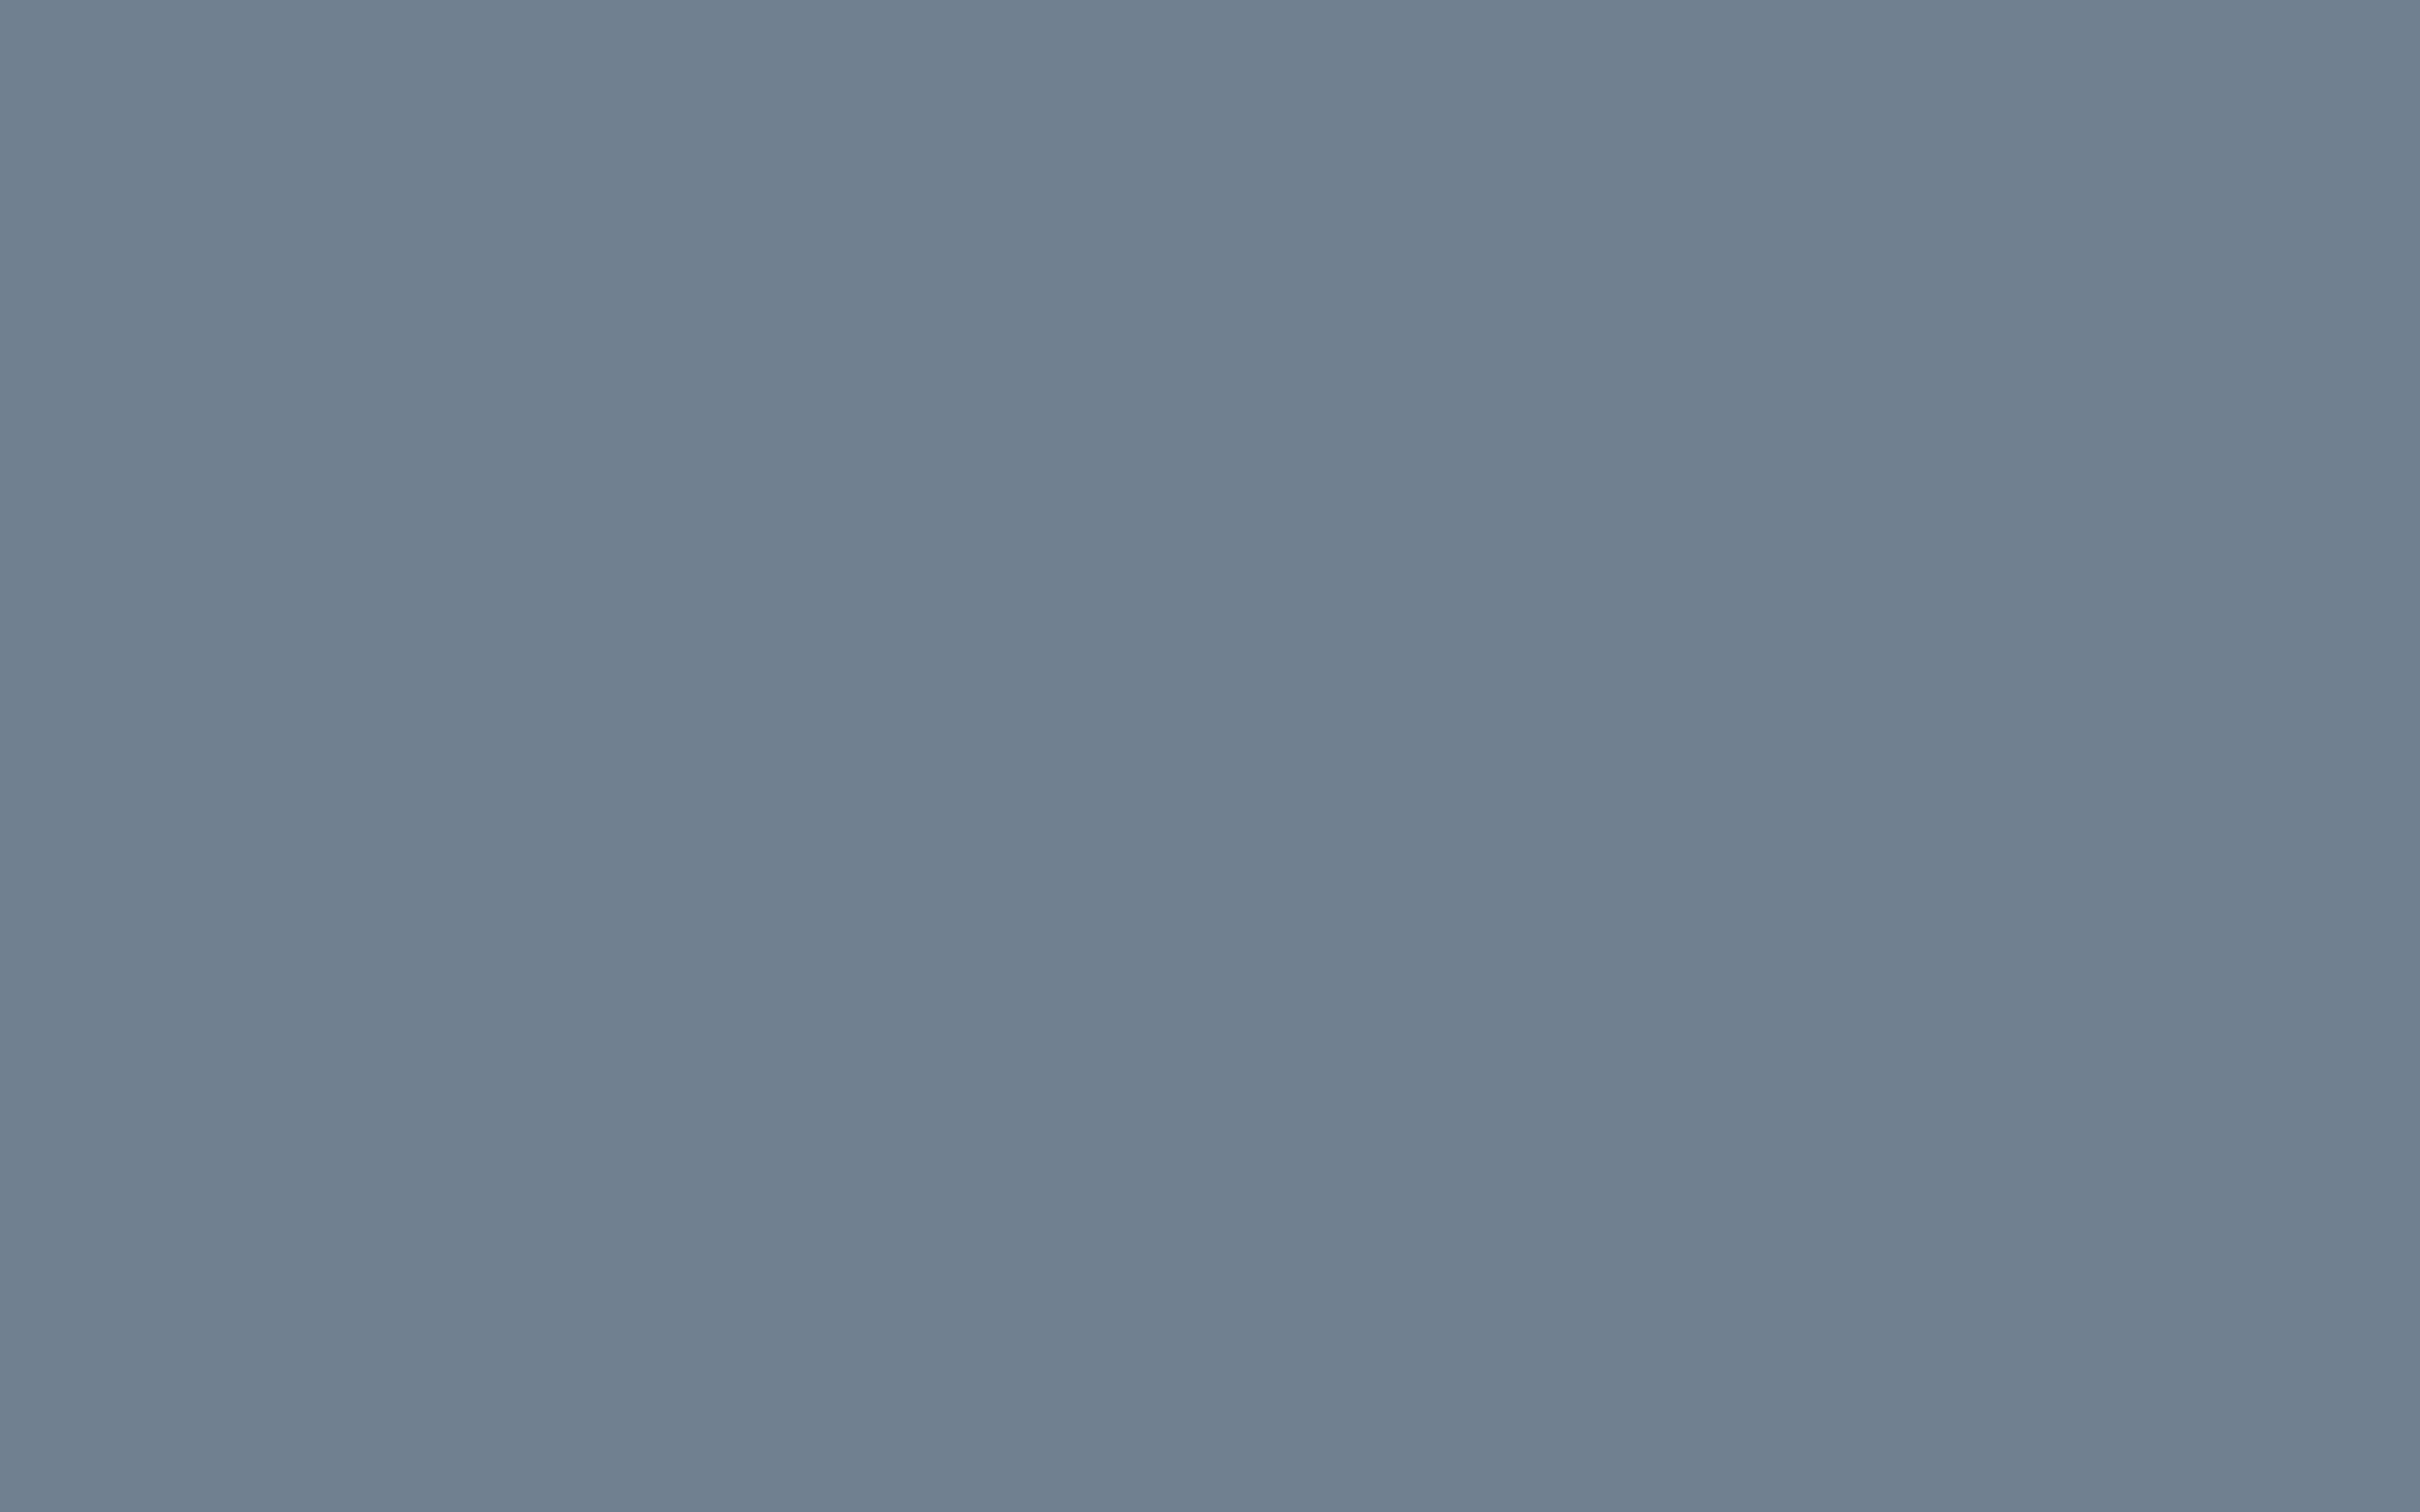 2560x1600 Slate Gray Solid Color Background